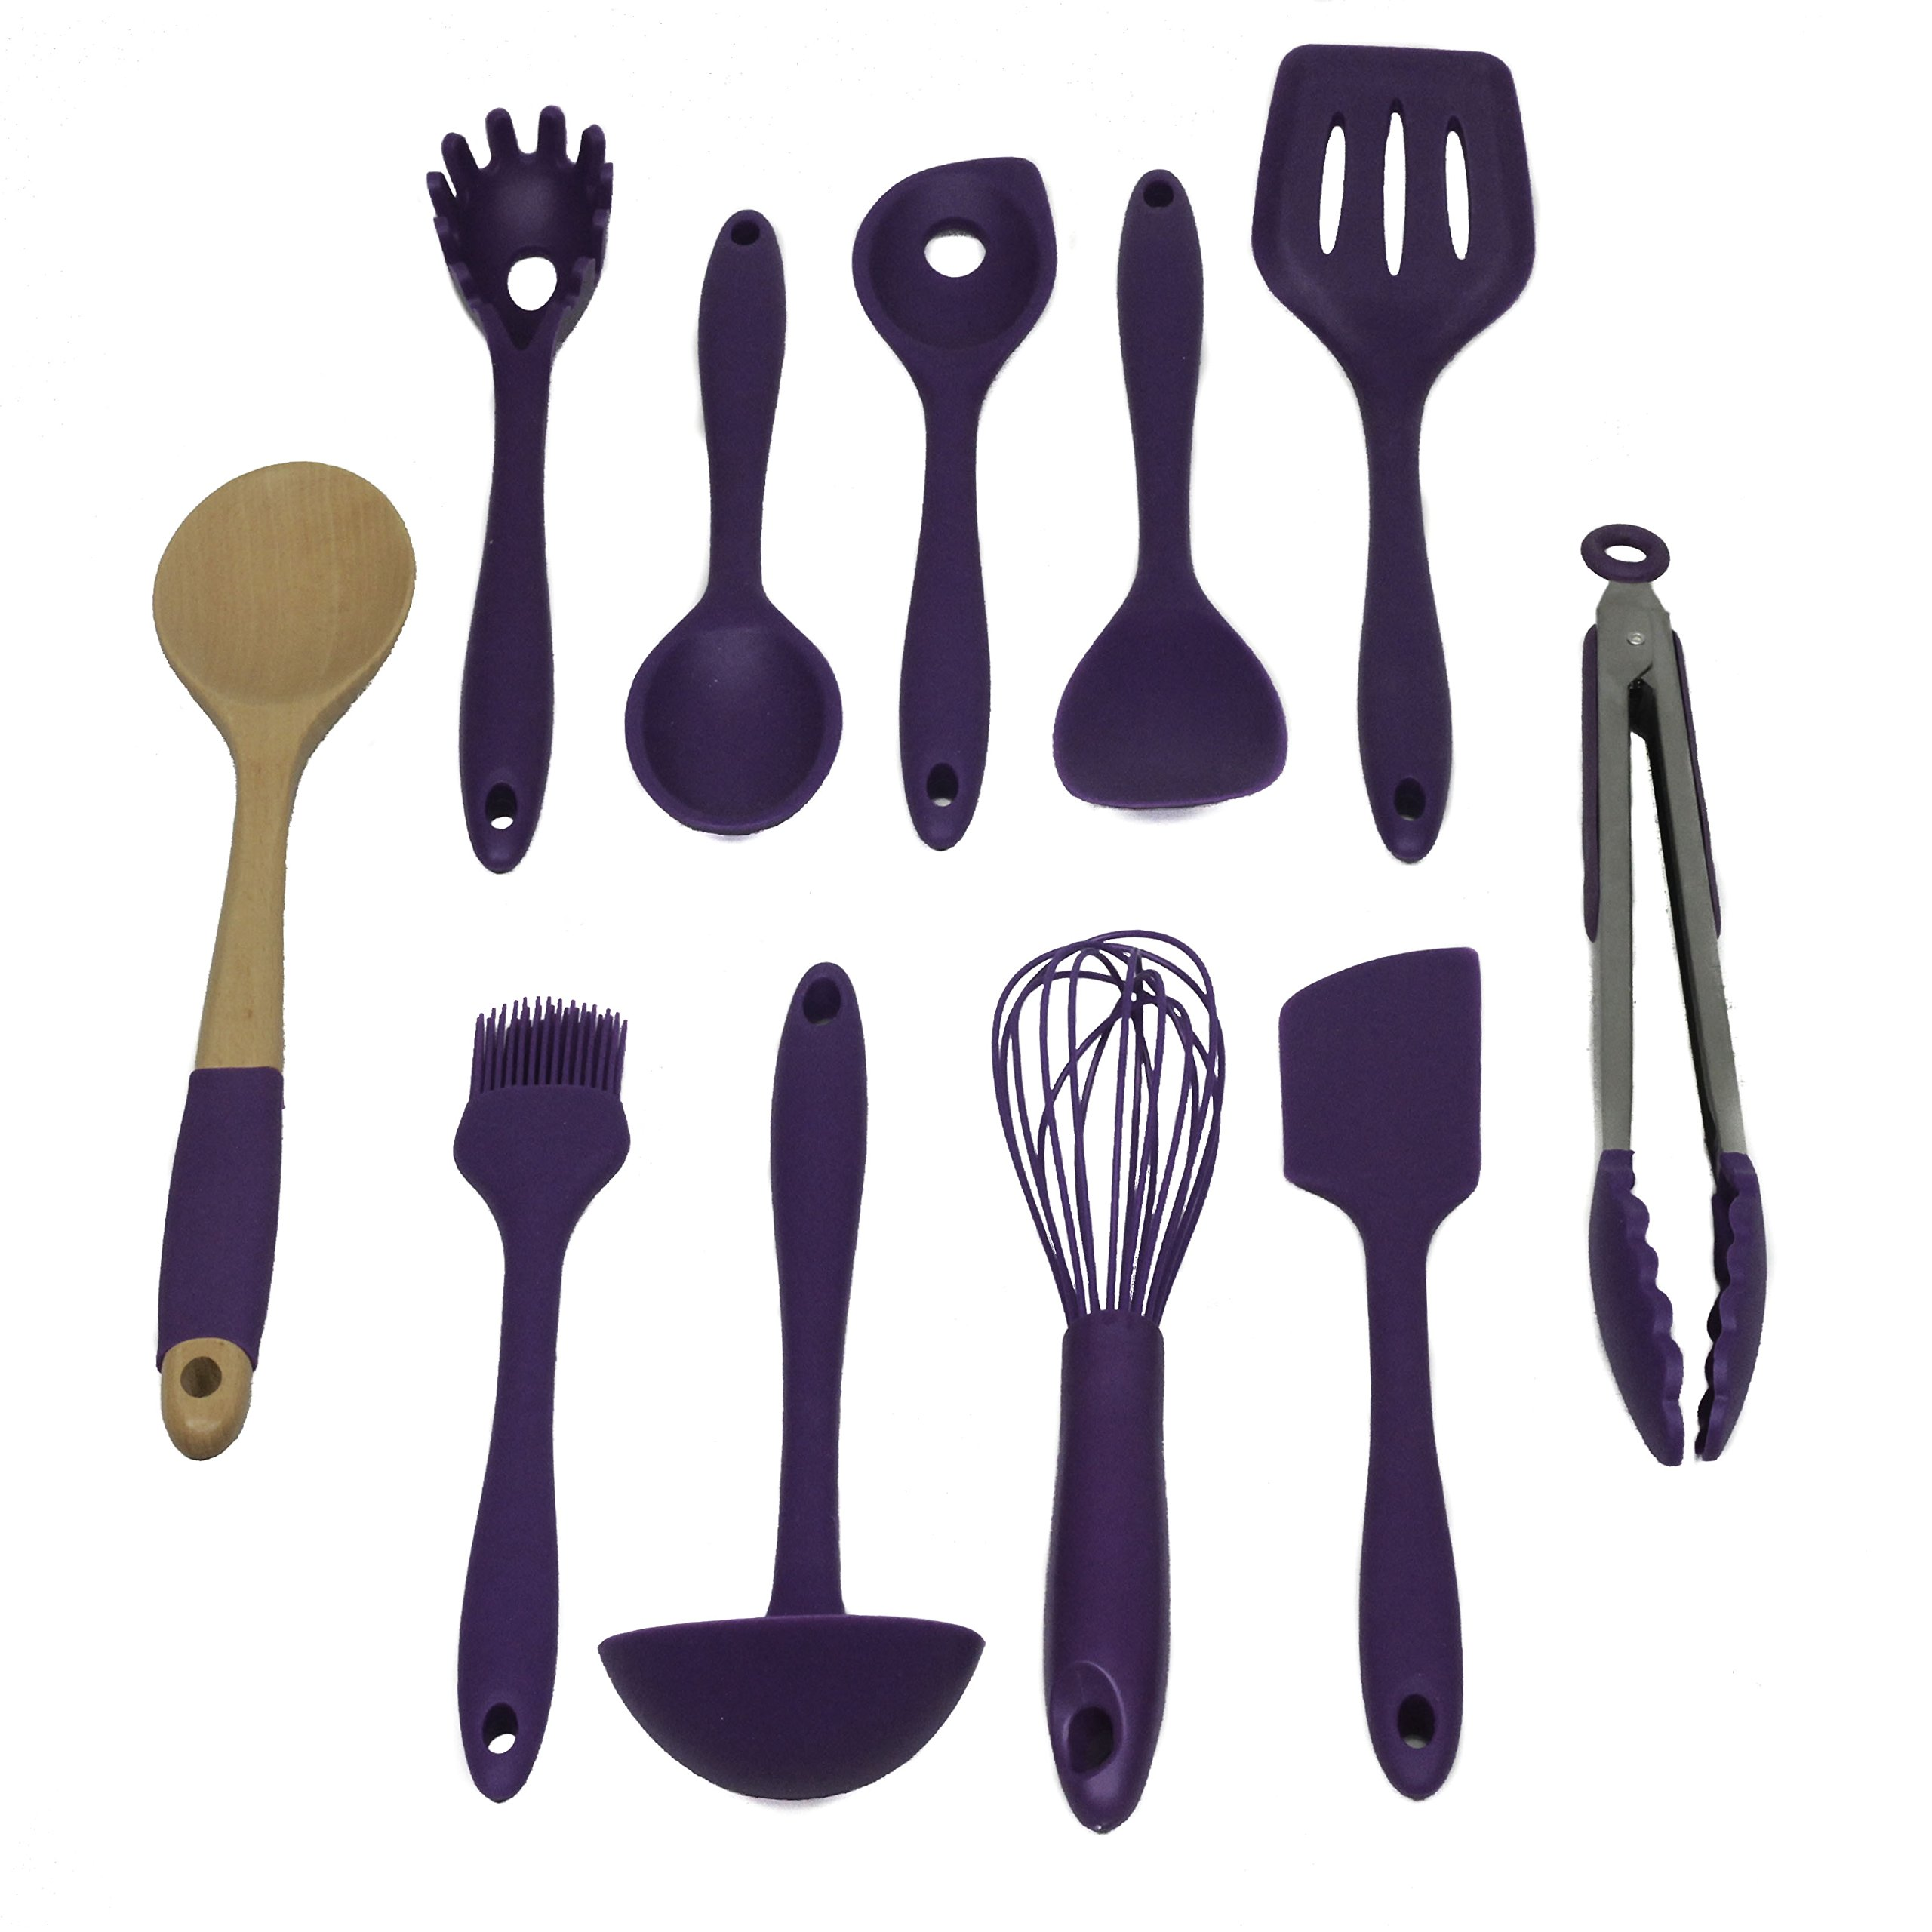 Chef Craft 42105 Premium Silicone Kitchen Tool and Utensil Set, 11 Piece, Purple by Chef Craft